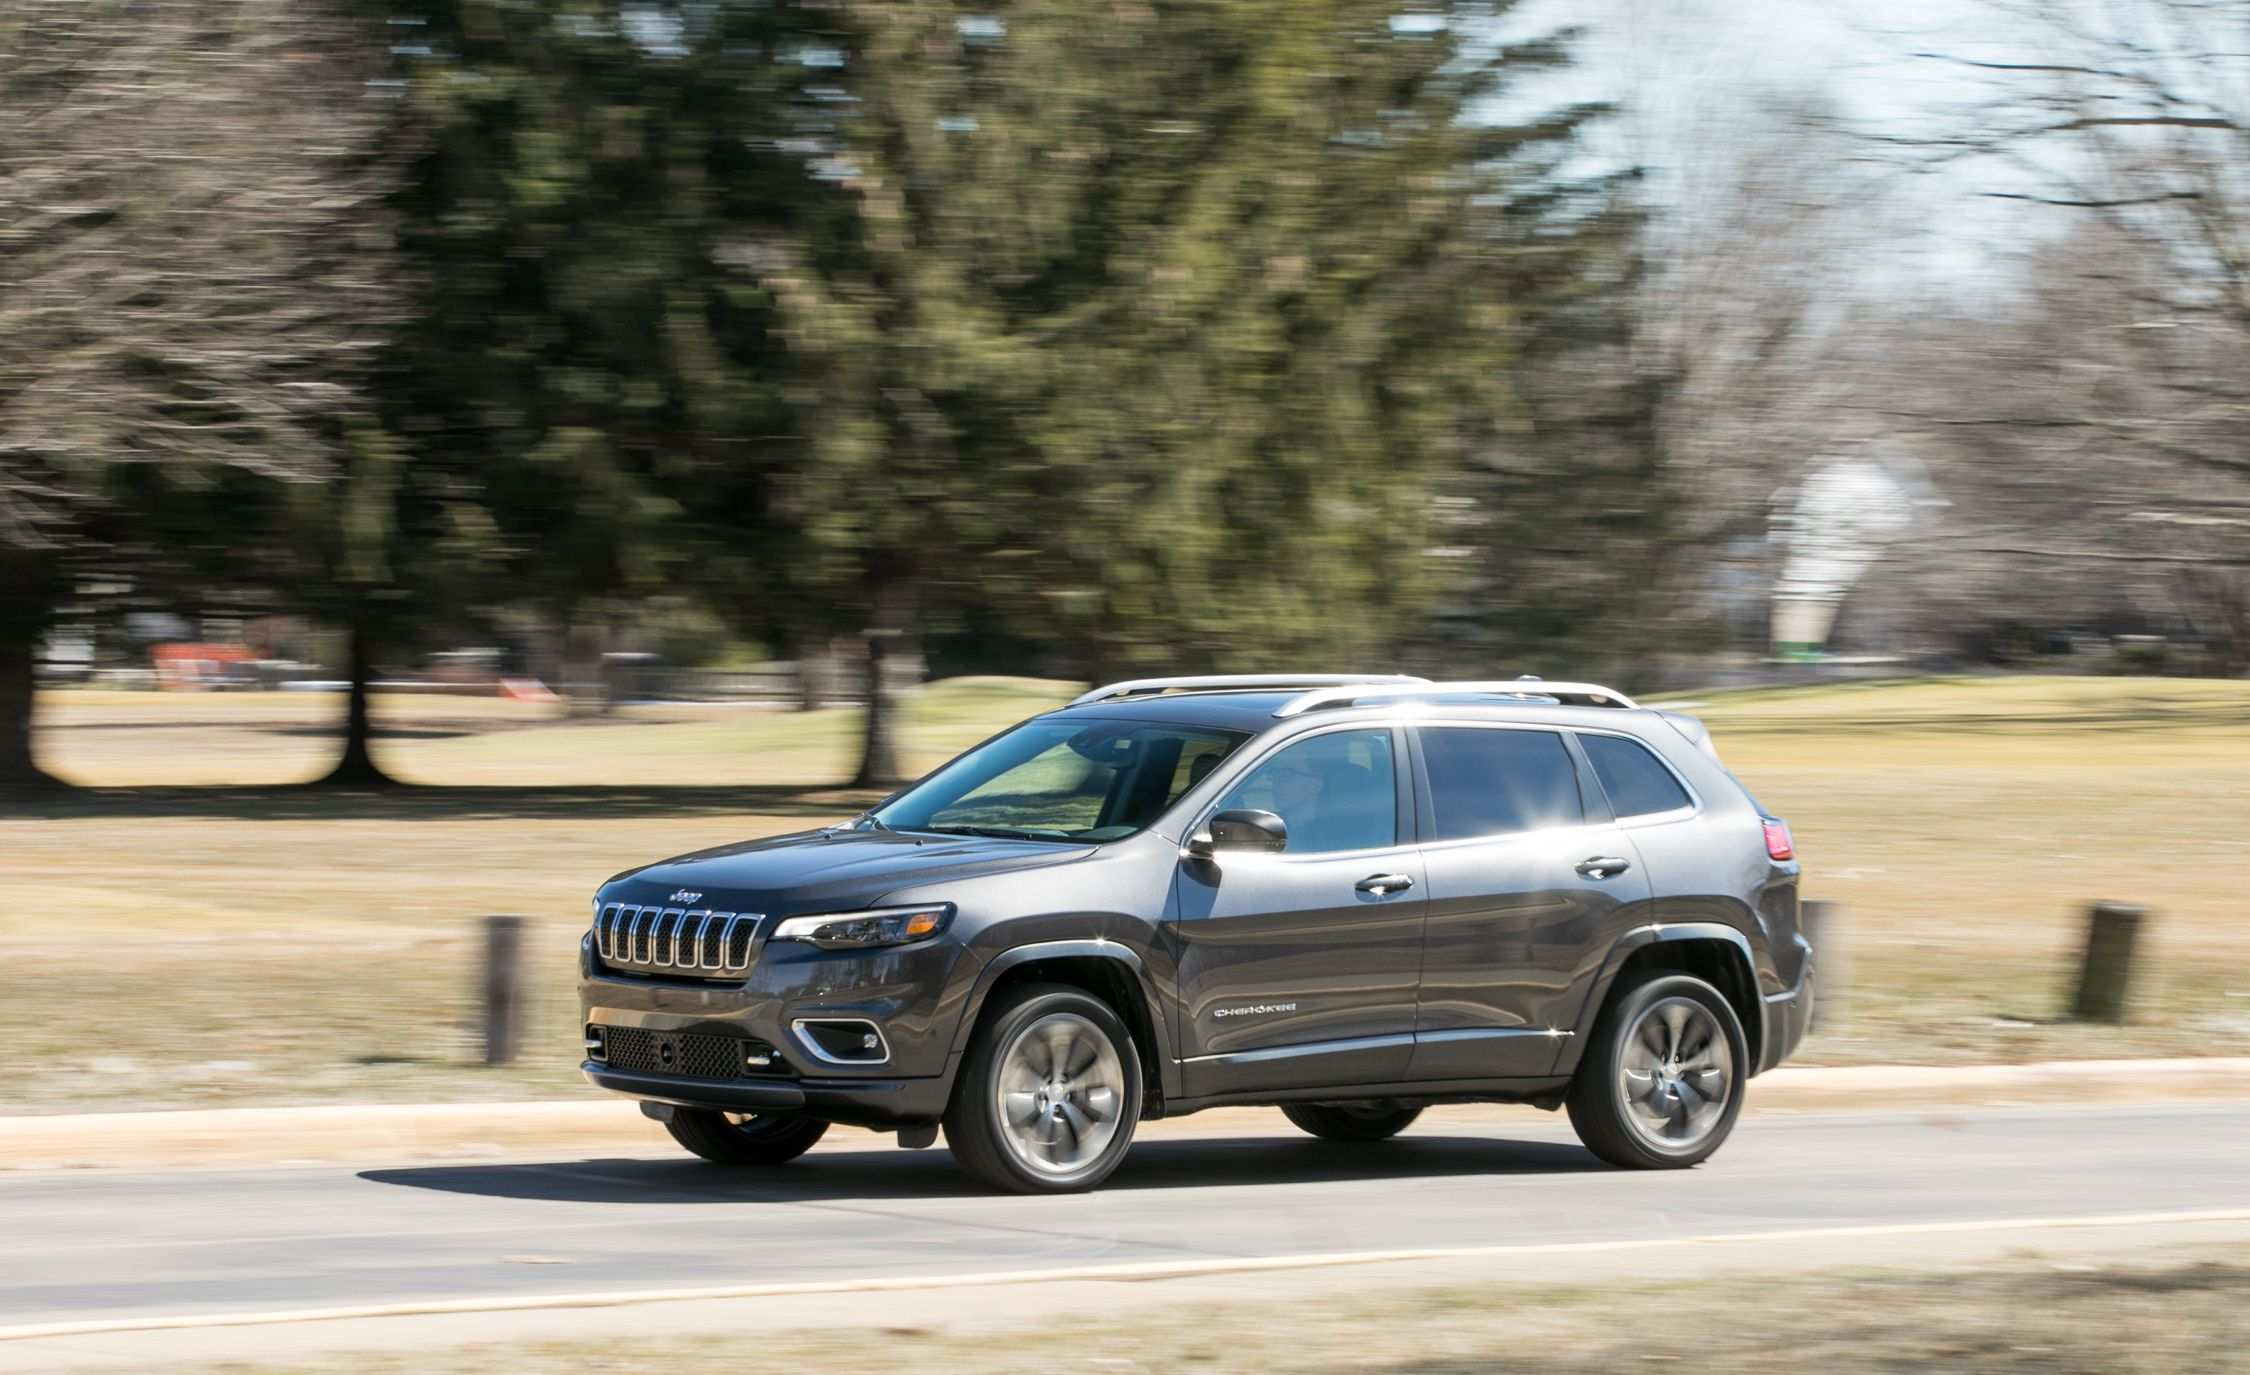 30 Concept of The 2019 Jeep Cherokee Ride Quality Release Date Price And Review Spesification by The 2019 Jeep Cherokee Ride Quality Release Date Price And Review